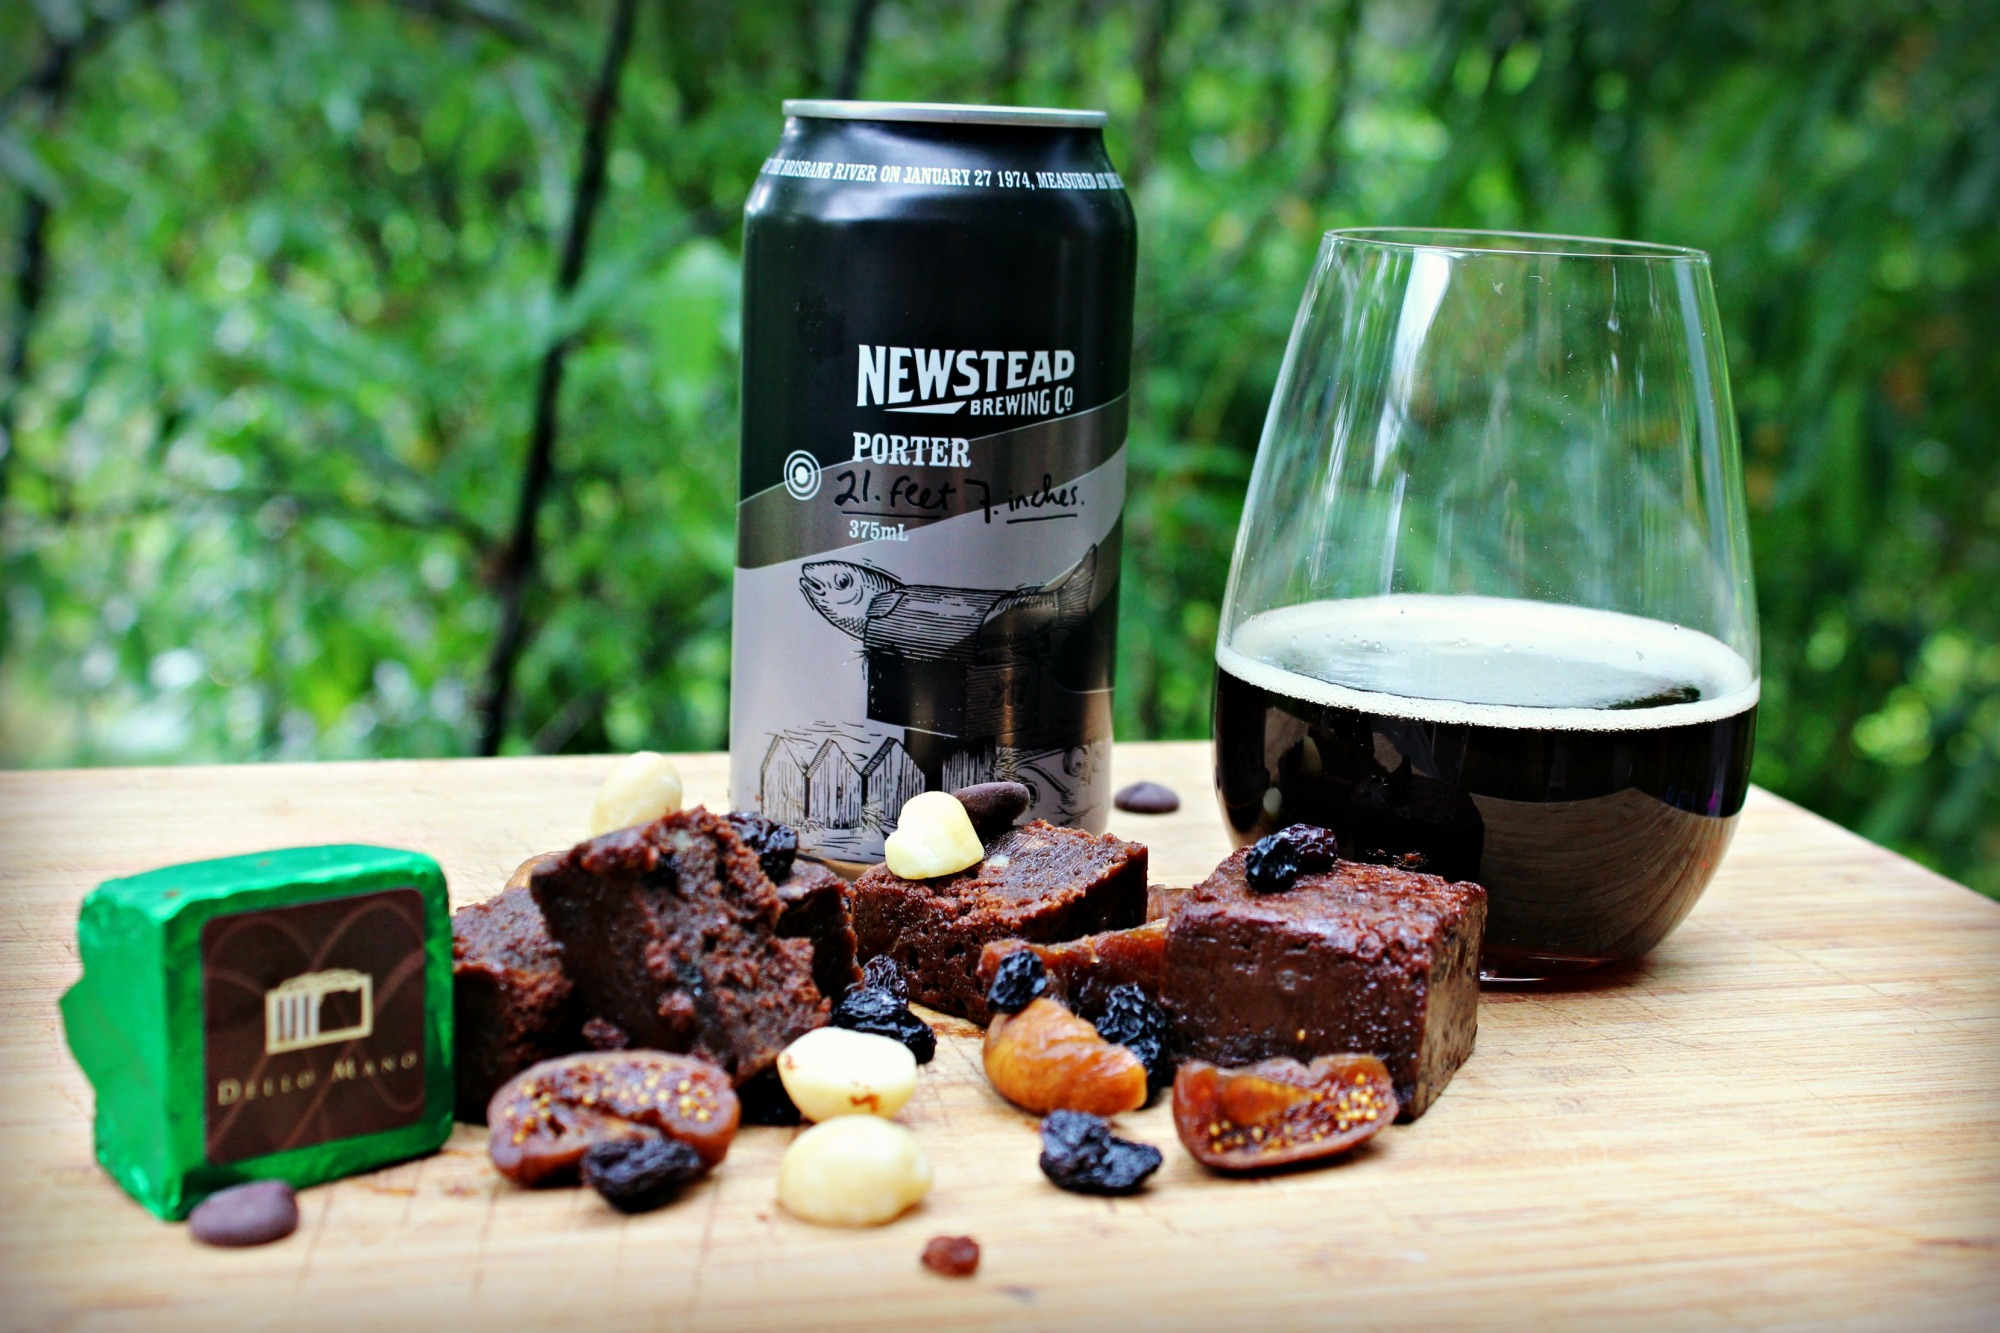 Dello Mano Christmas Brownie and Newstead Brewery Porter